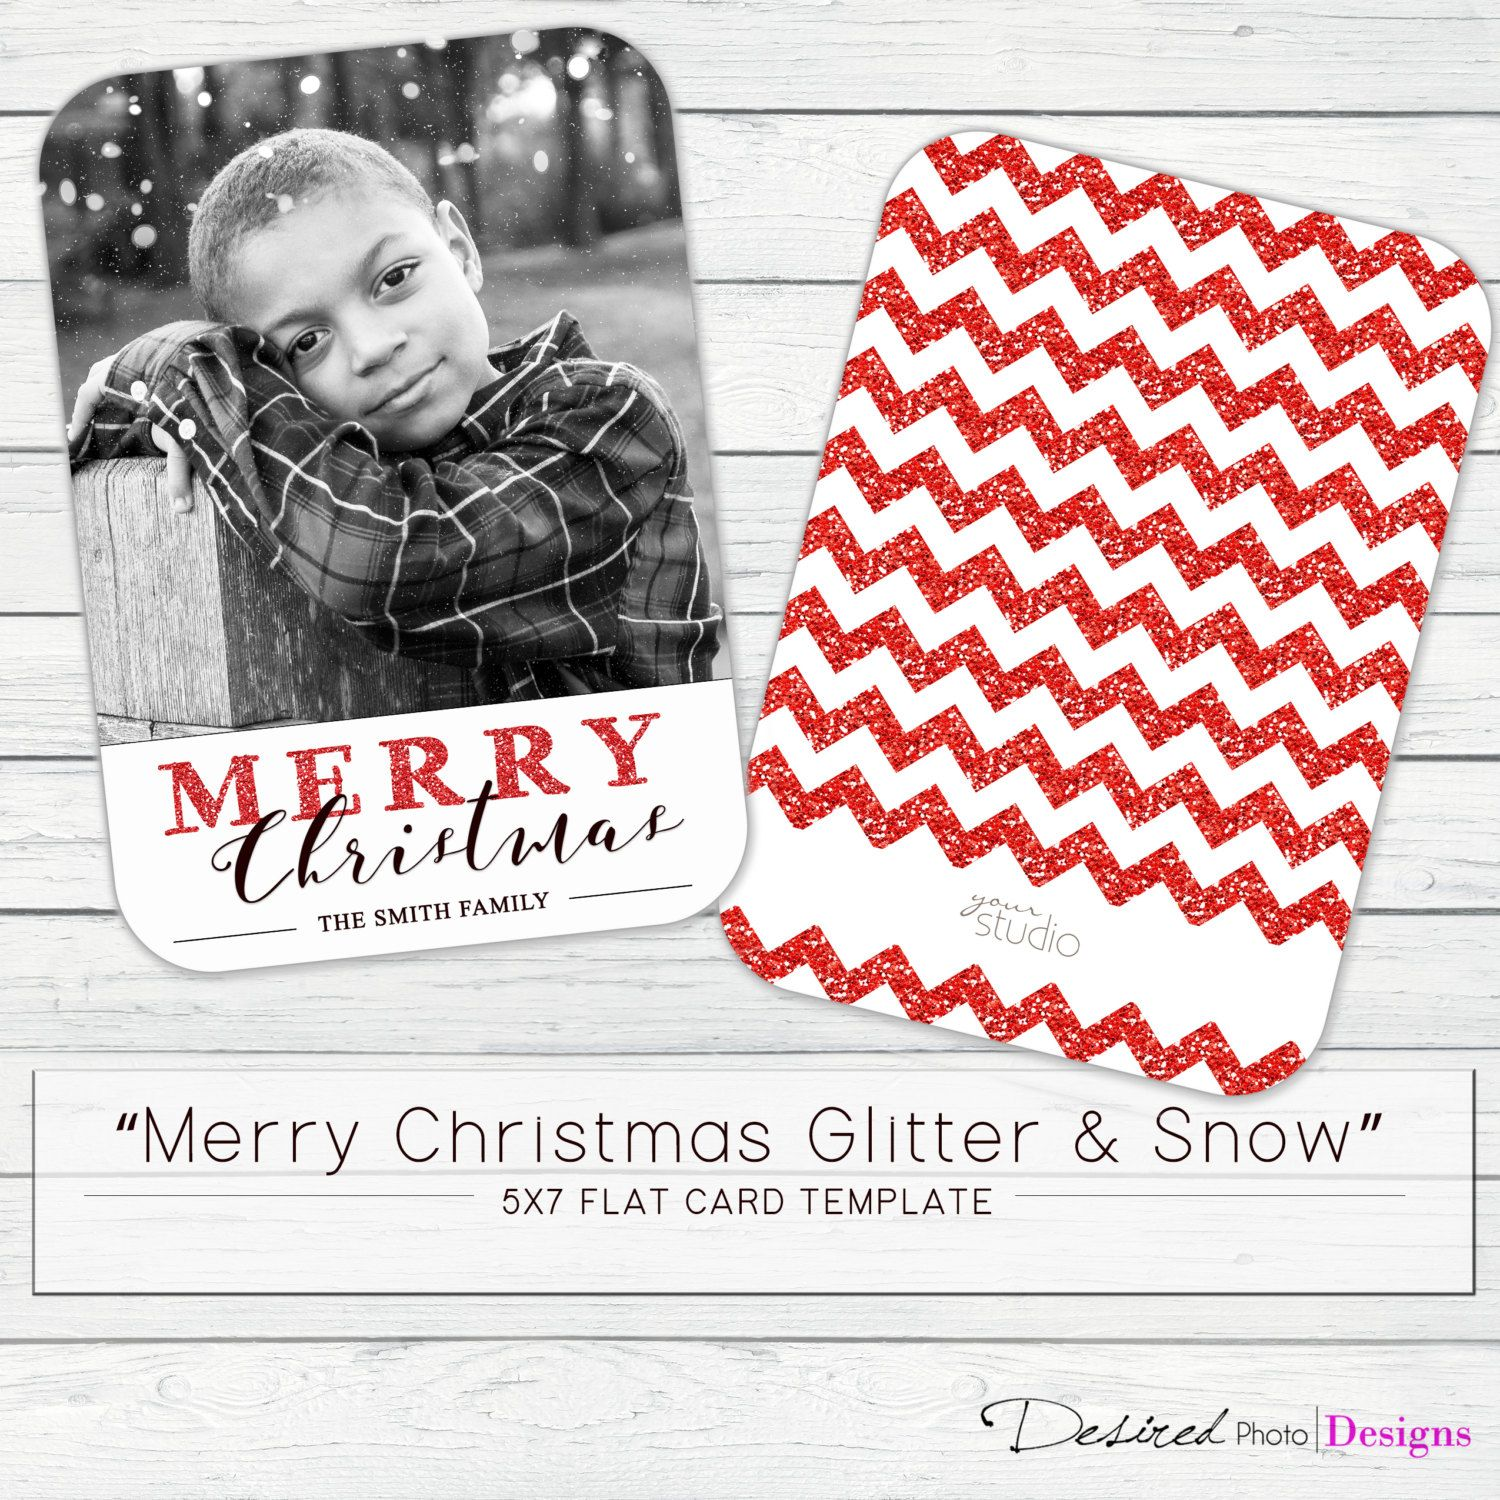 5x7 Merry Christmas Glitter Snow Flat Card Template Whcc By Desiredphotodesigns On Etsy Glitter Christmas Card Template Merry